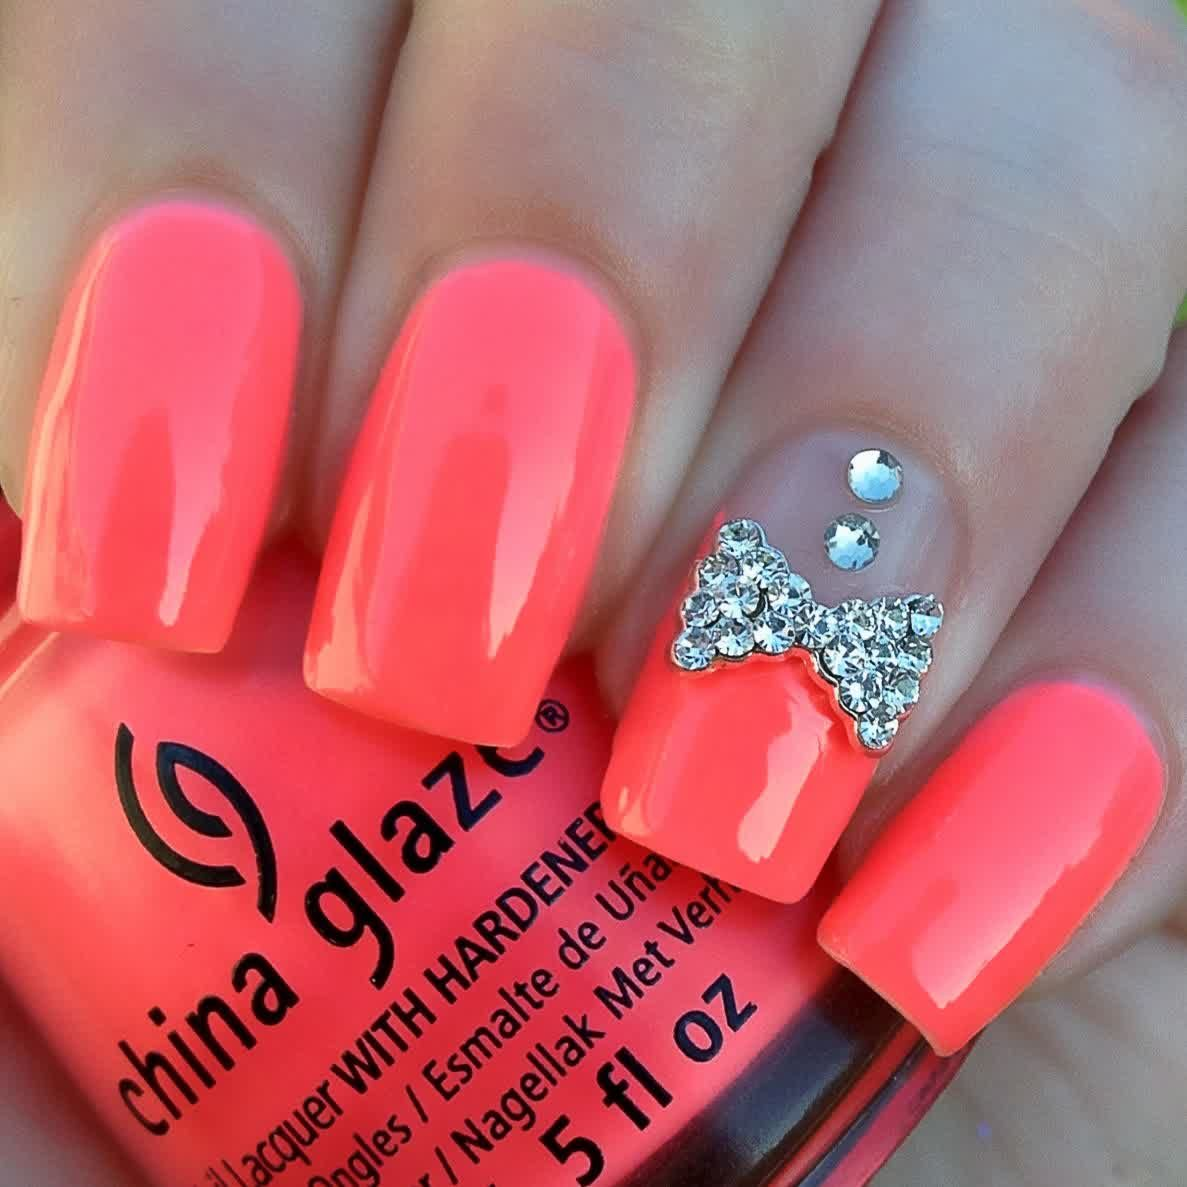 This is a combination of a simple set of solid color nails, with a design  on them. They are cute and not over the top. Something anyone can pull off! - Pretty Nails Nails Pinterest Pretty Nails, Solid Color Nails